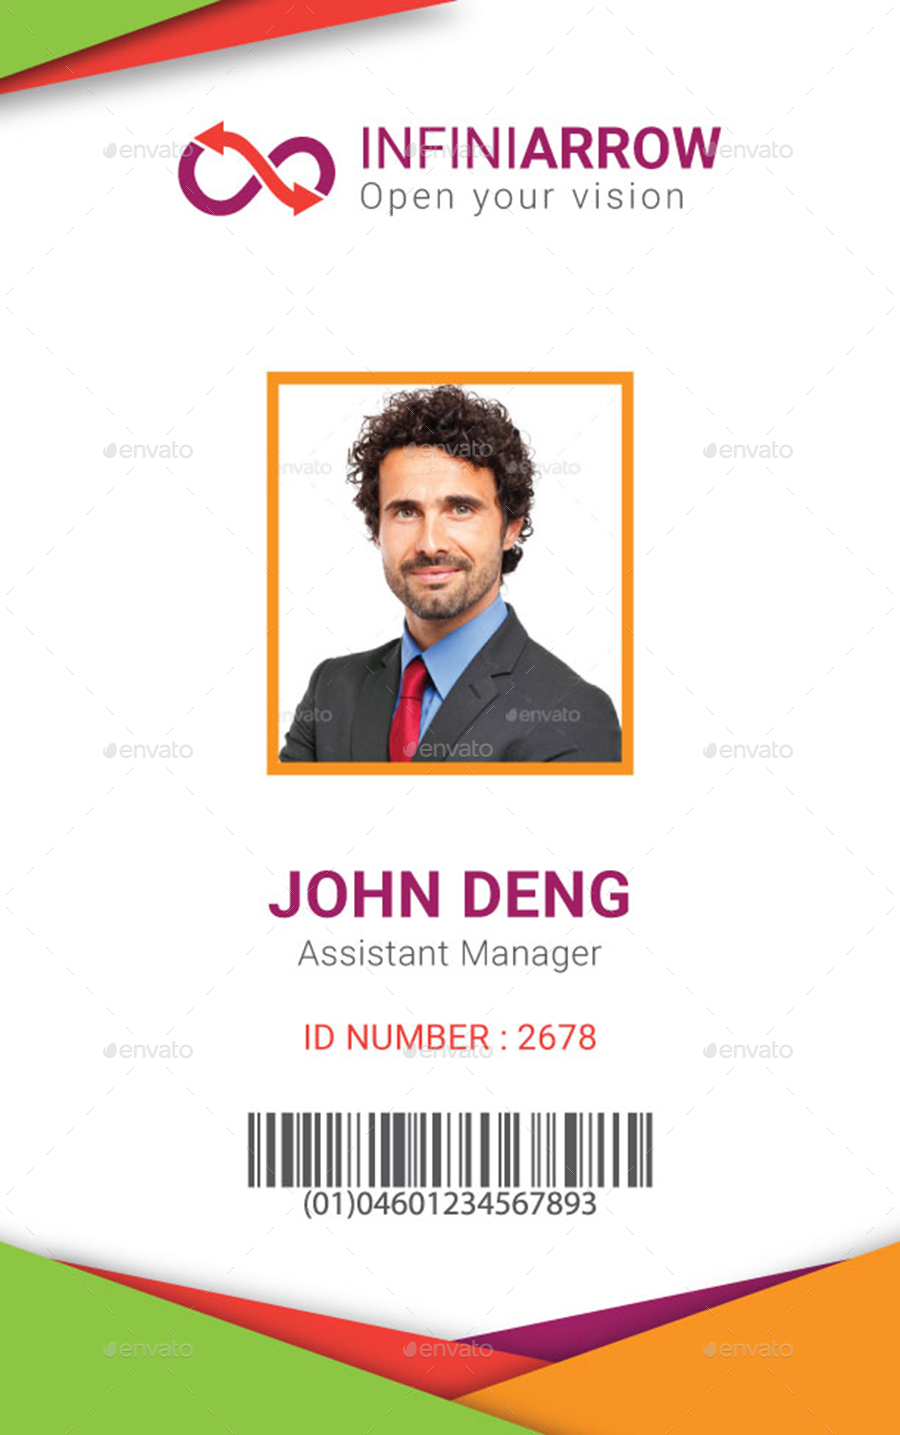 Id Badge Templates Pertaminico - Id badge template photoshop